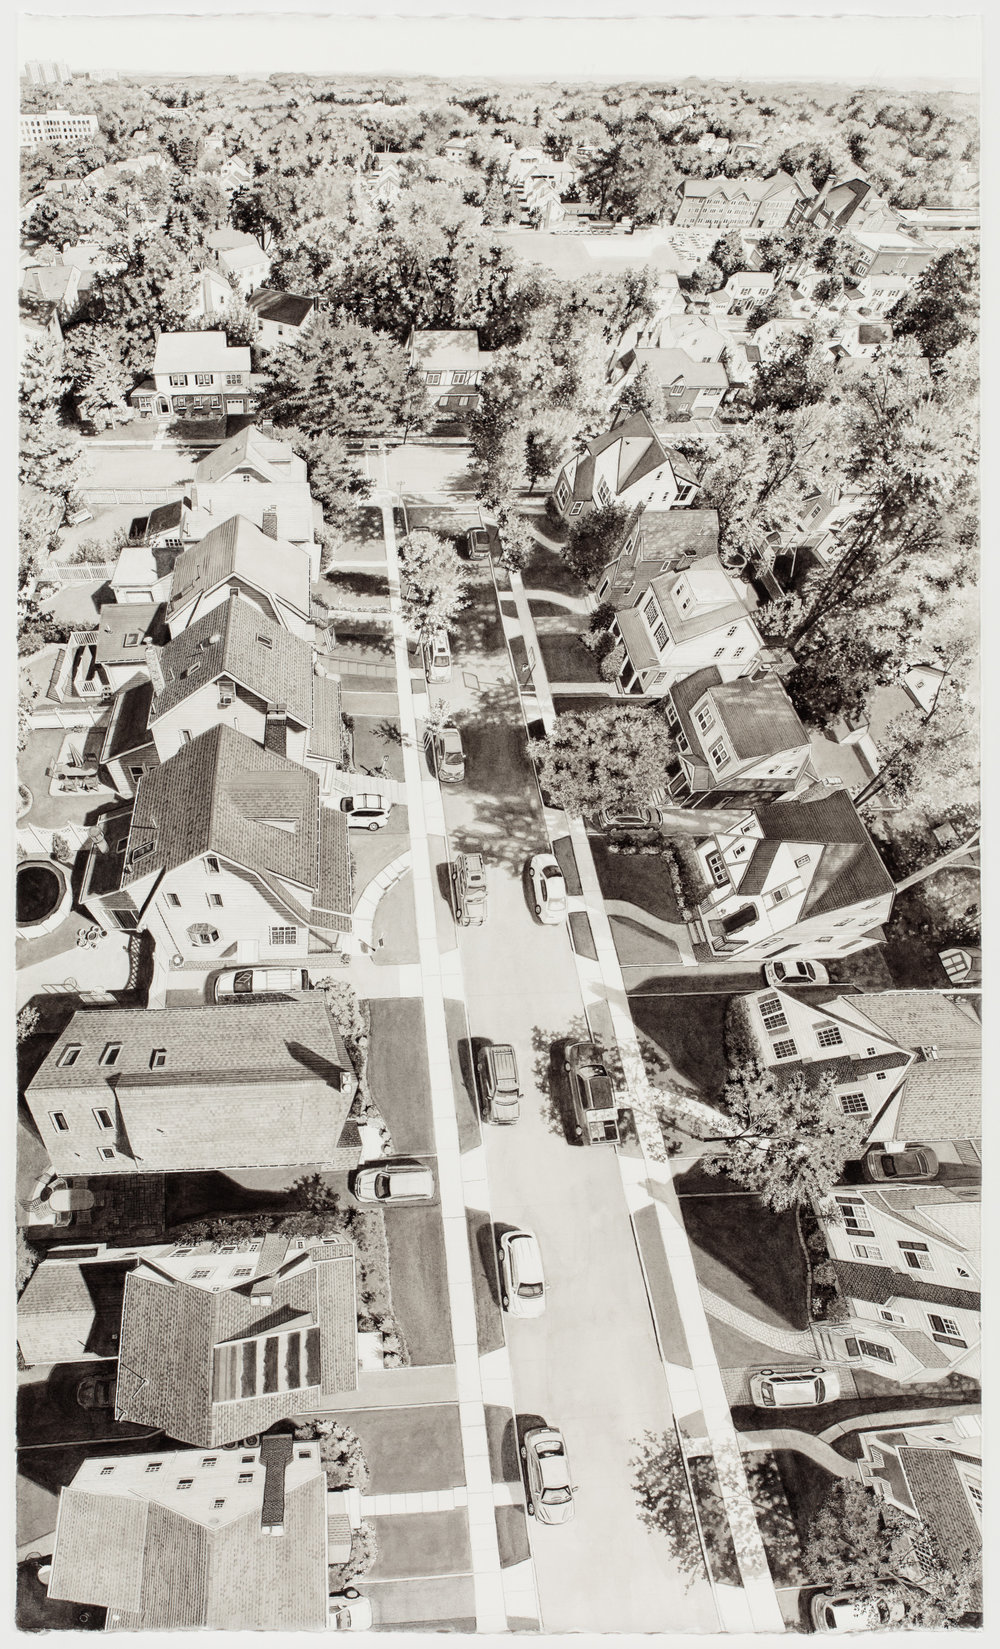 Drone 15 (View up Street)